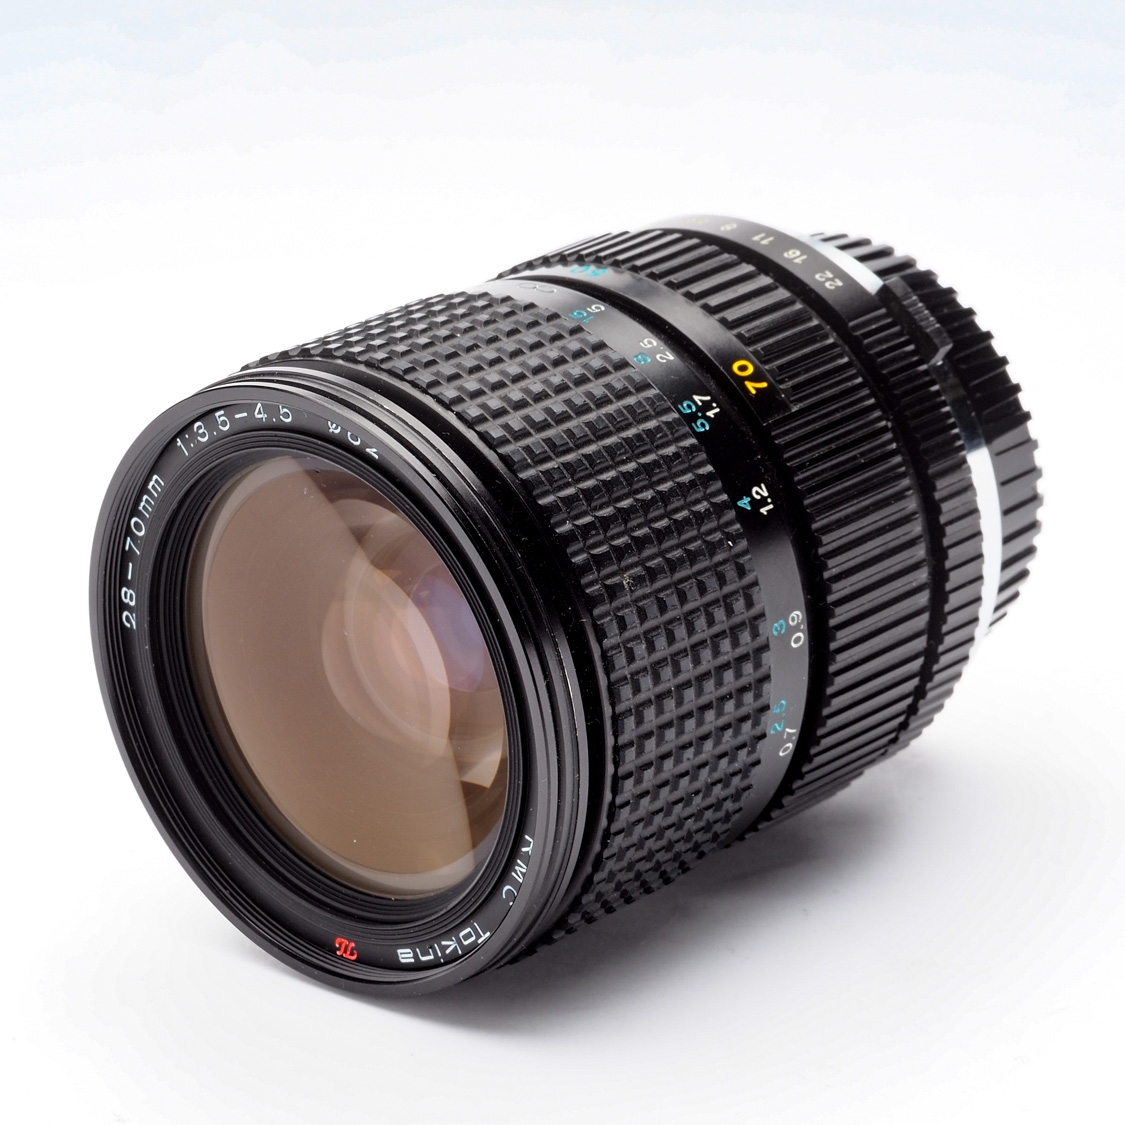 Used - Tokina 28-70MM F3.5-4.5 RMC Lens for Olympus OM